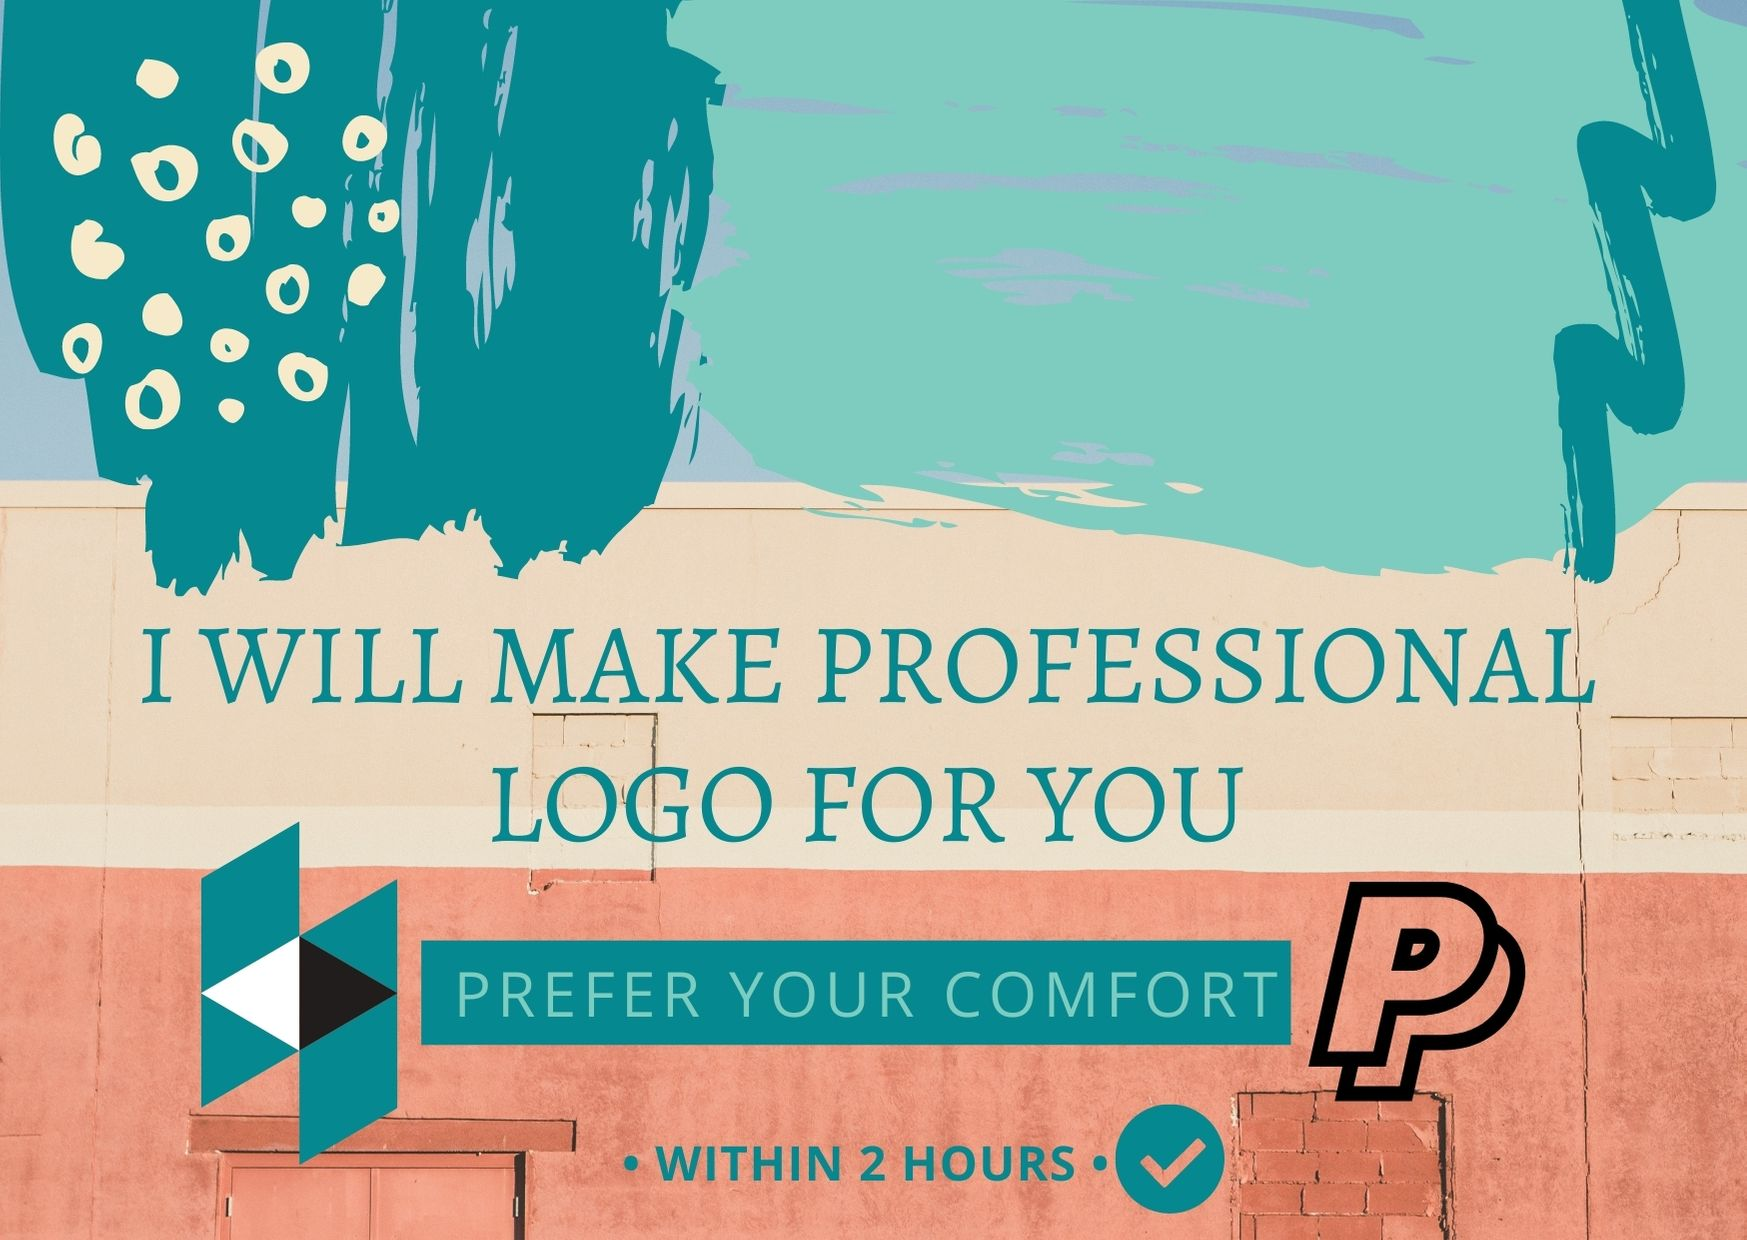 I will make professional and versatile logo for your business